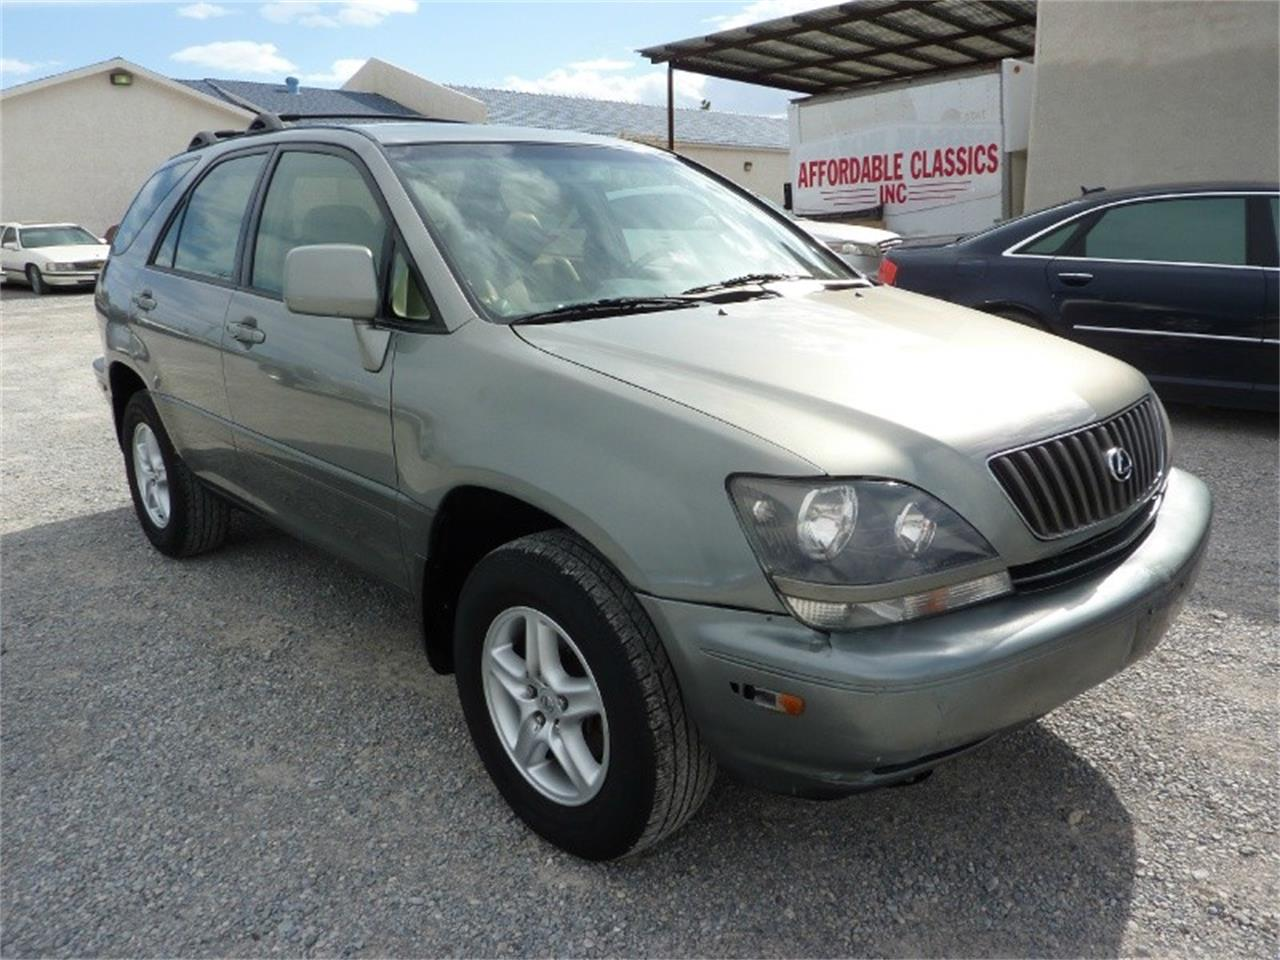 Large Picture of '00 Lexus RX located in Nevada - $2,999.00 - Q1K7